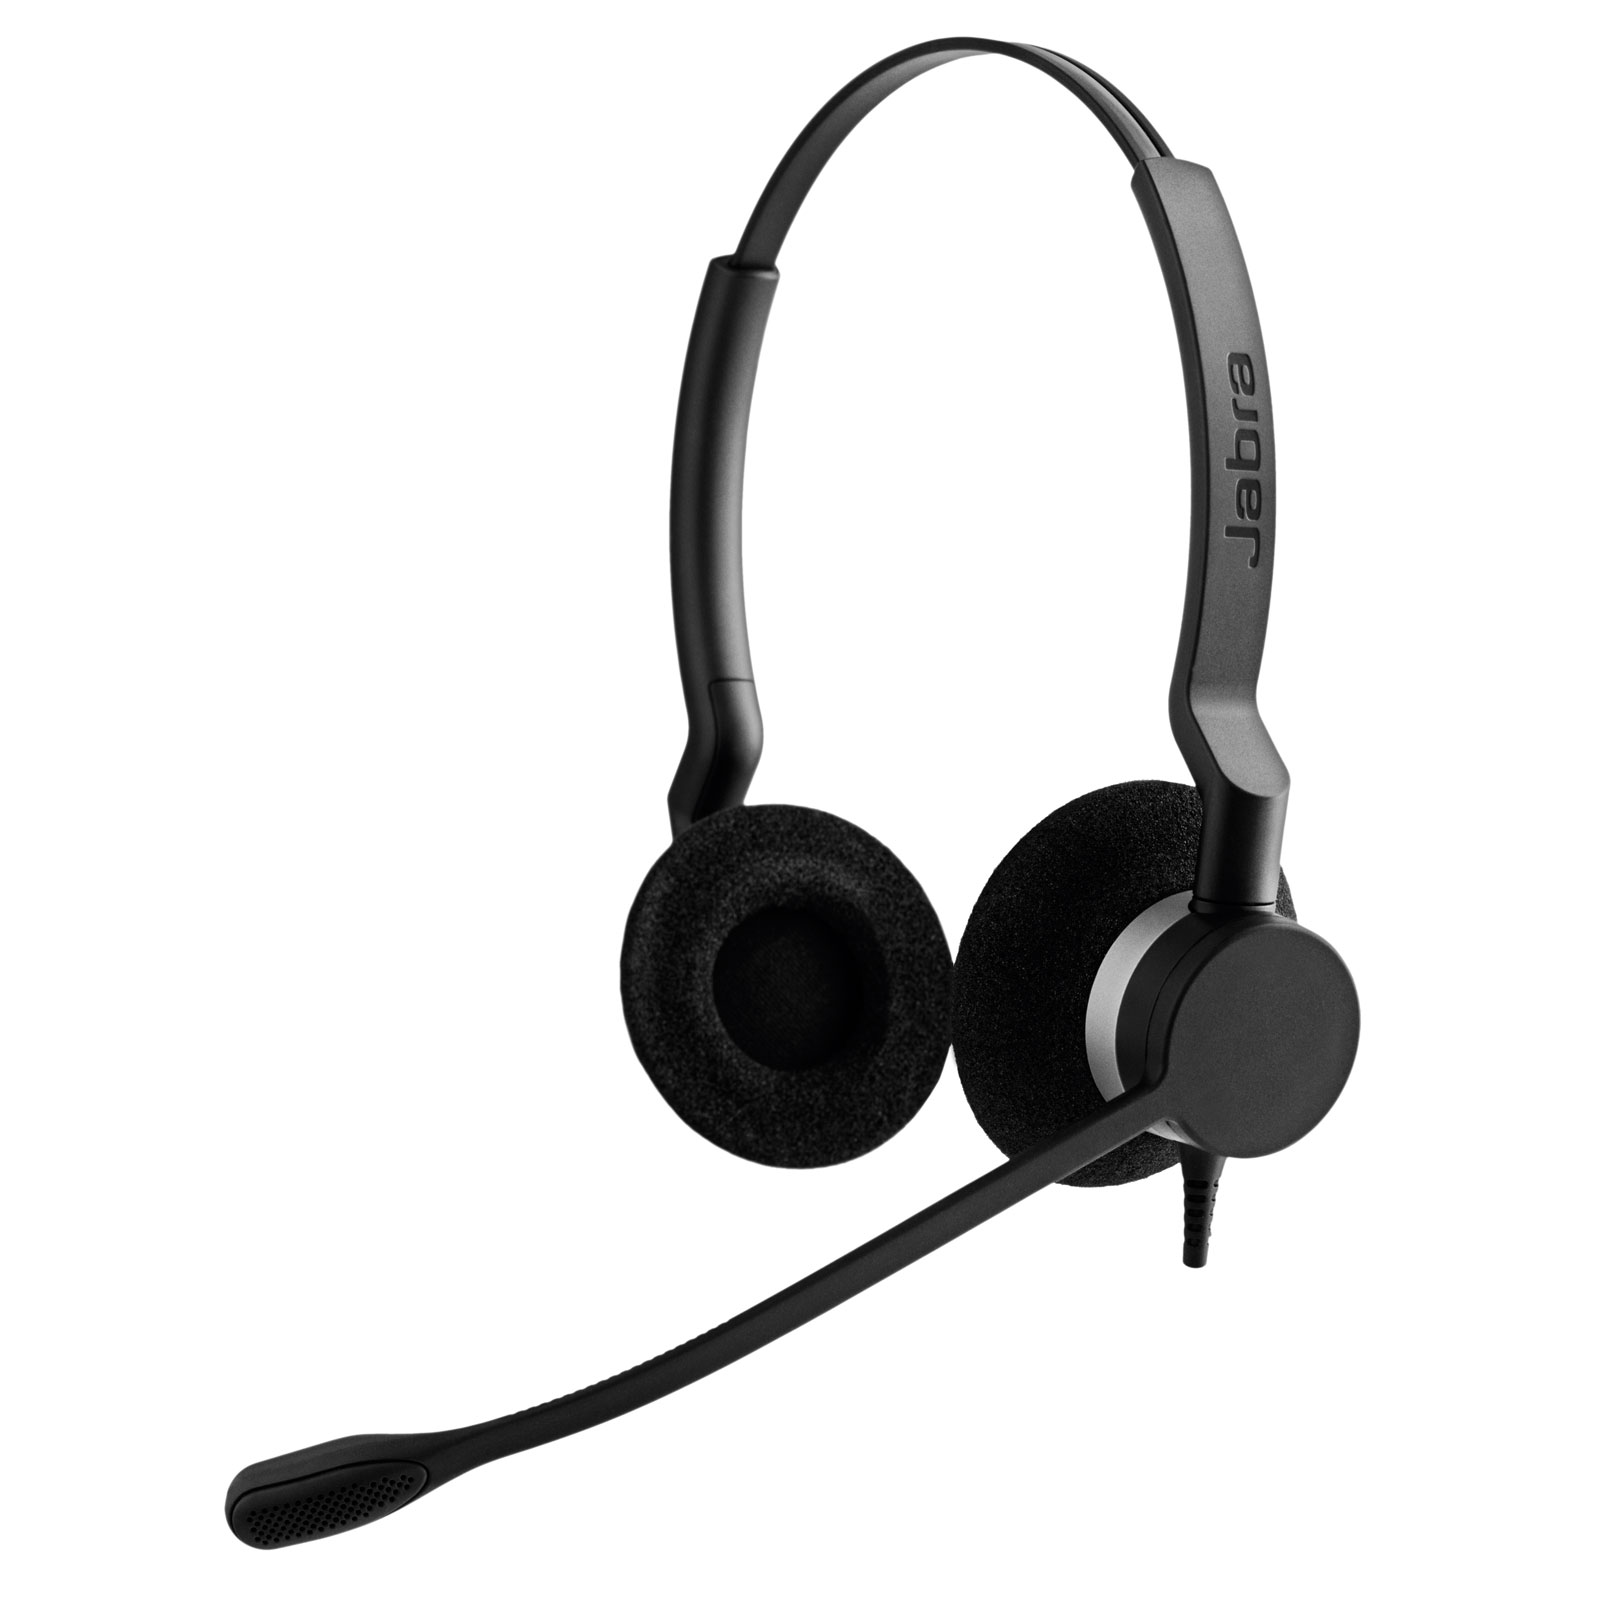 Jabra BIZ 2300 Duo Binaural Headset